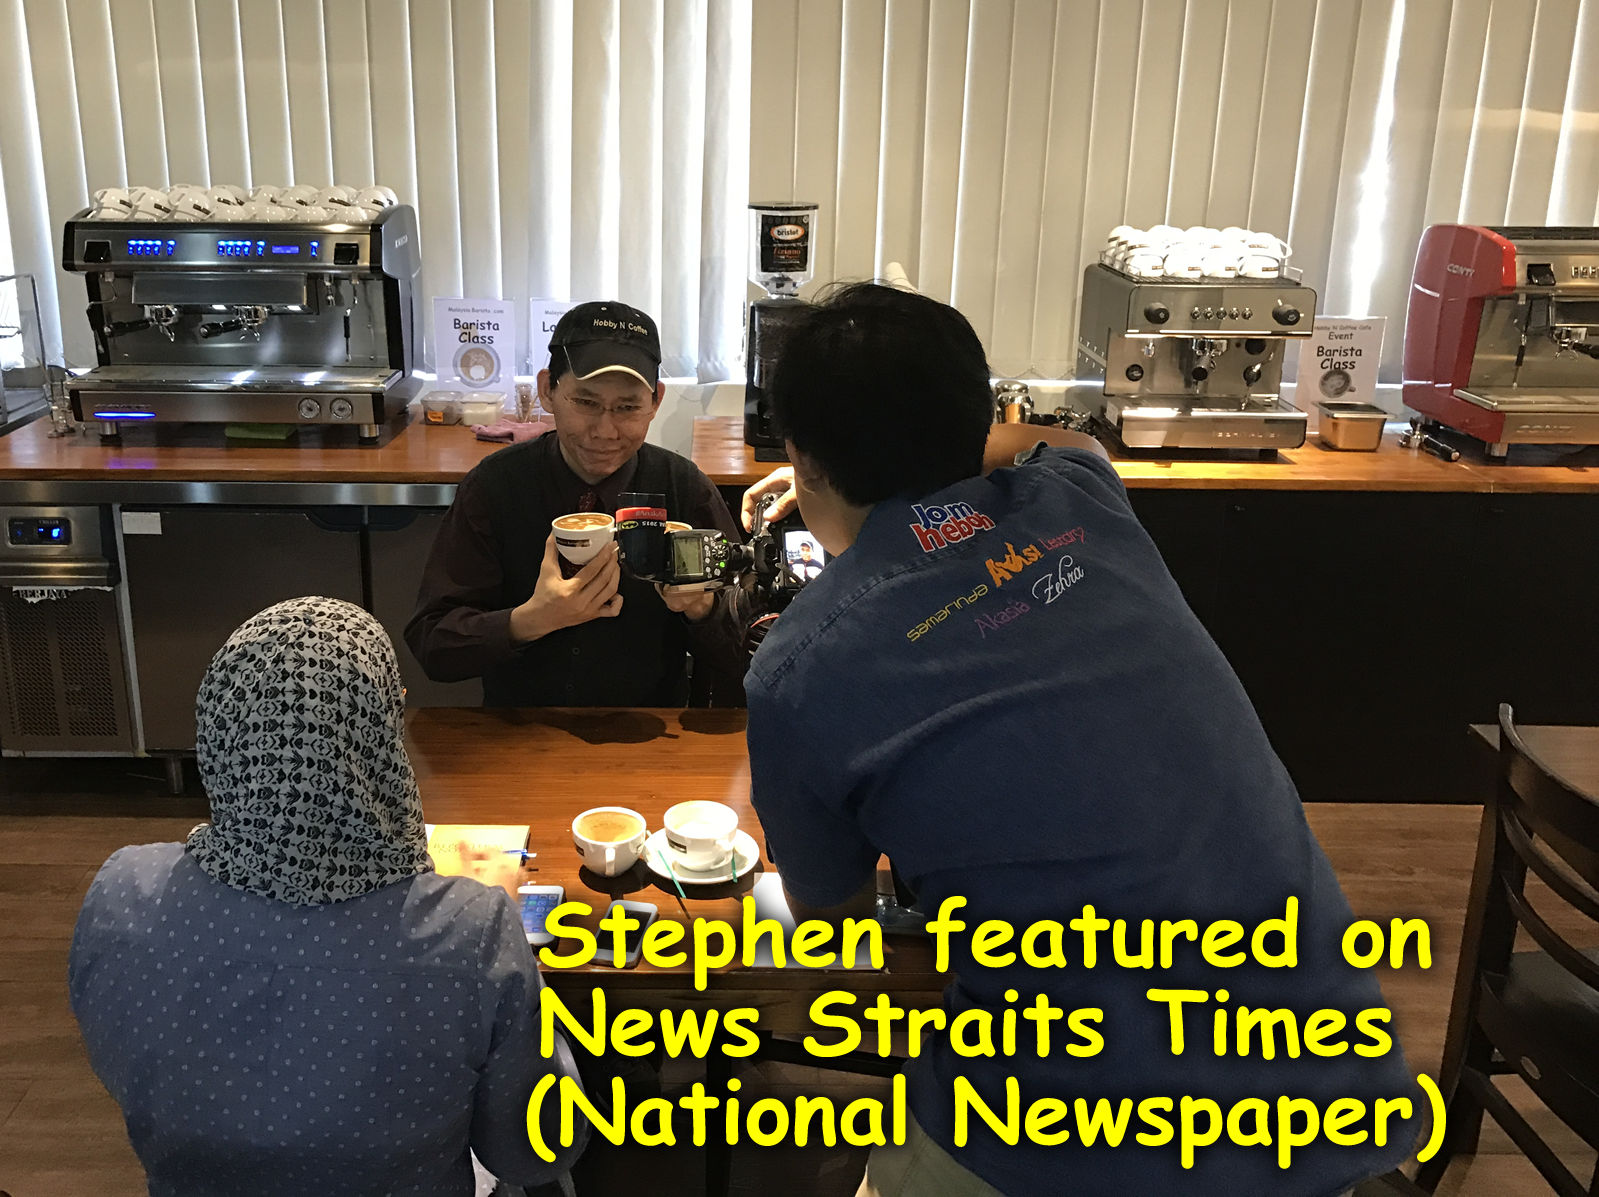 Stephen featured on NST